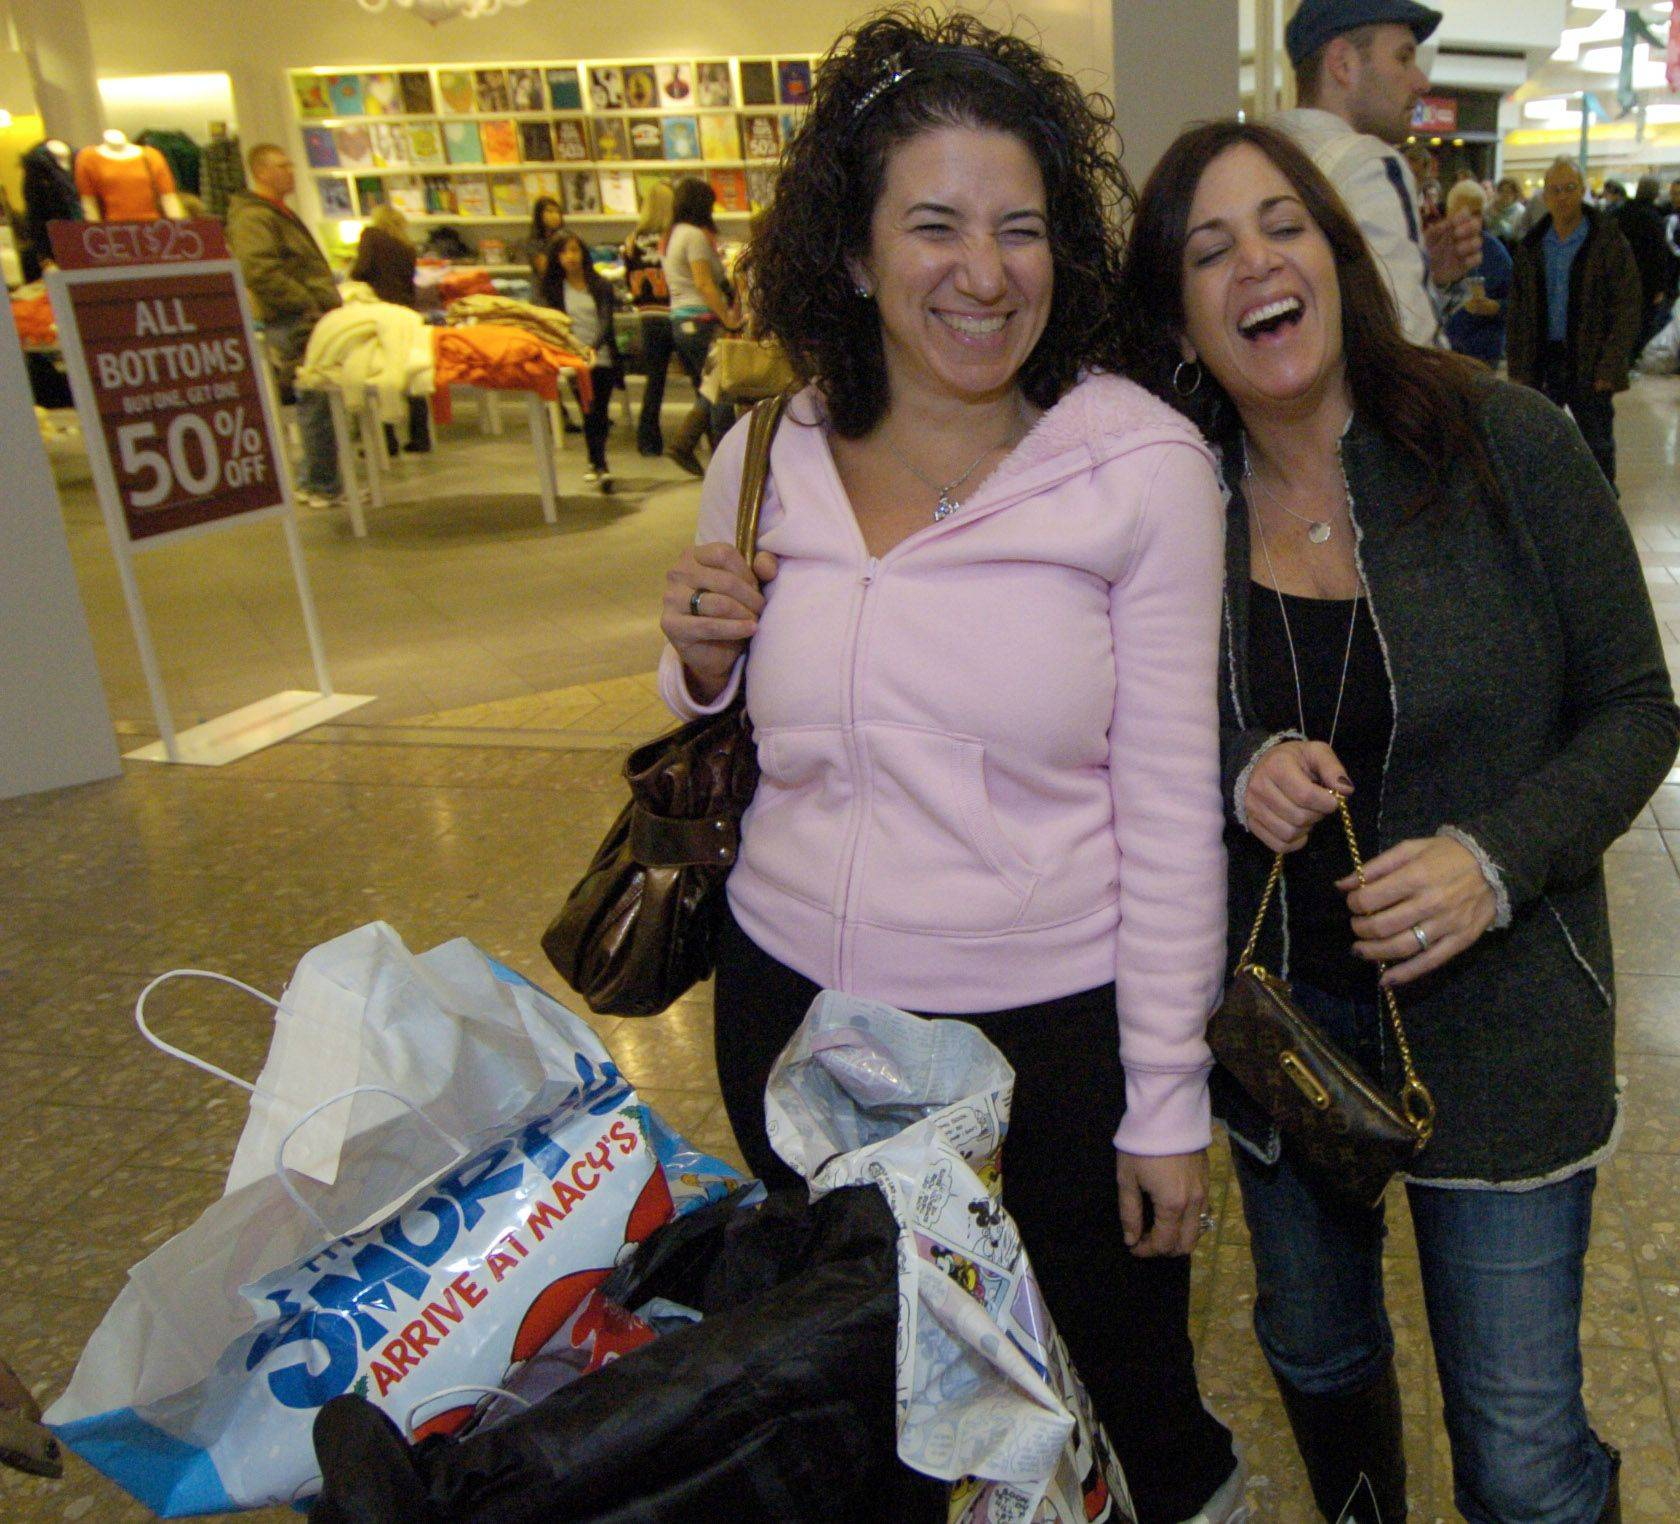 Donna Collins, left, of Lake in the Hills and Julie Mertz of Algonquin talk about shopping on Black Friday at Woodfield mall in Schaumburg.